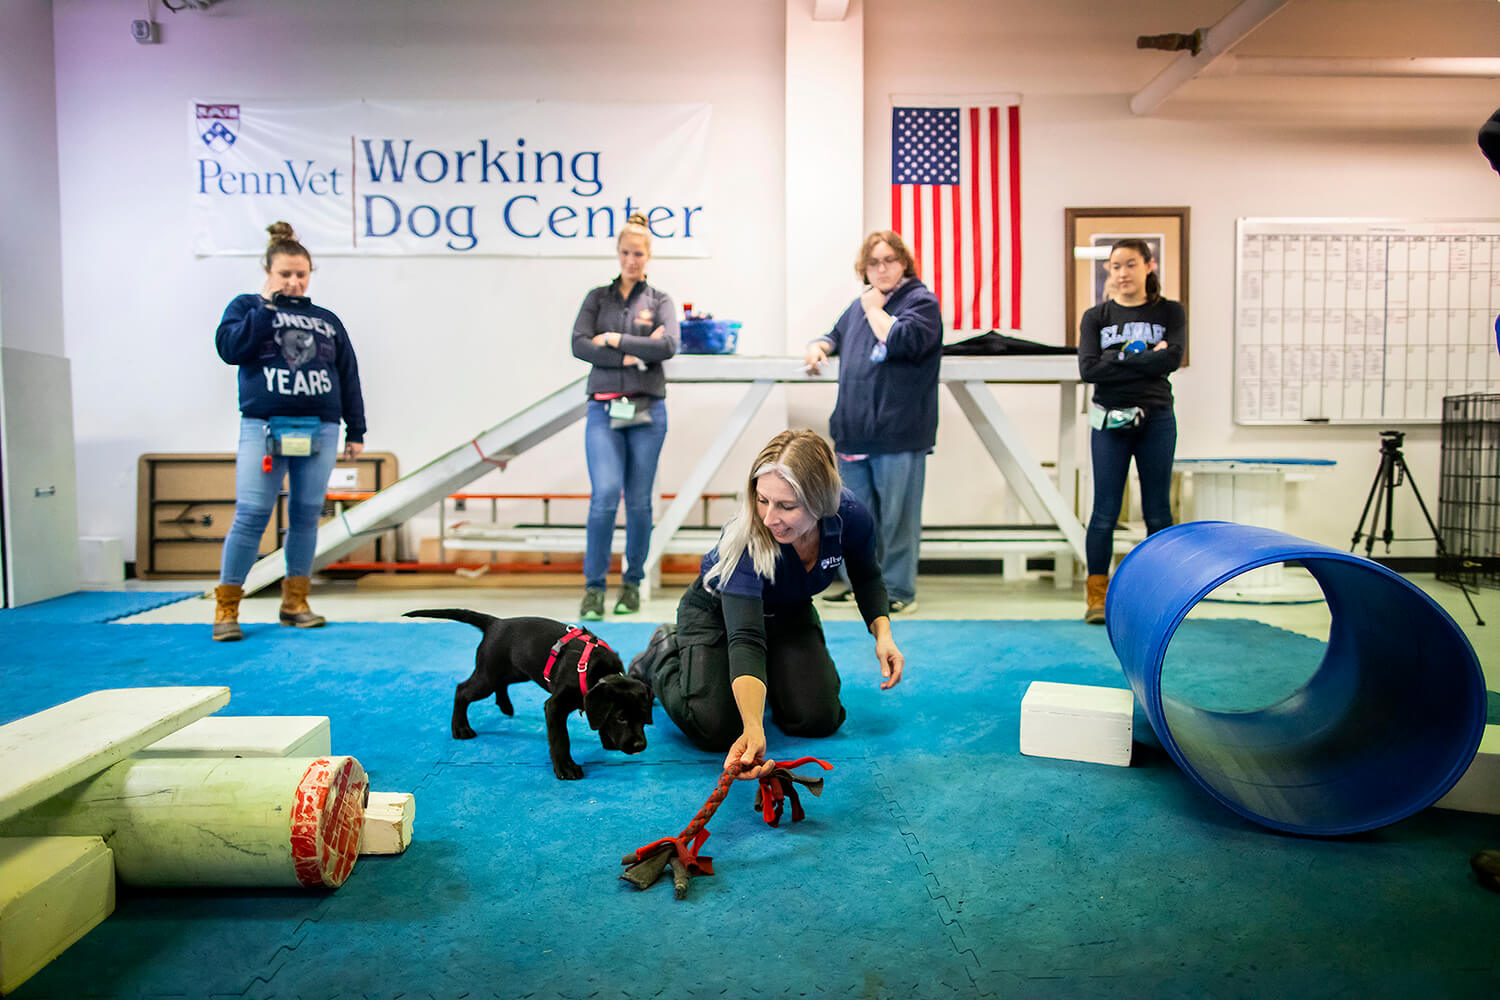 Urban, a three-month-old black Labrador retriever, trains with Danielle Berger at the Penn Vet Working Dog Center. Berger is leading the training for the U litter, composed of Urban and seven of her brothers and sisters, with assistance from interns including (left to right) Charlotte Kronick, Dominique Andrews, Trevor Vidas, and Tesa Stone.